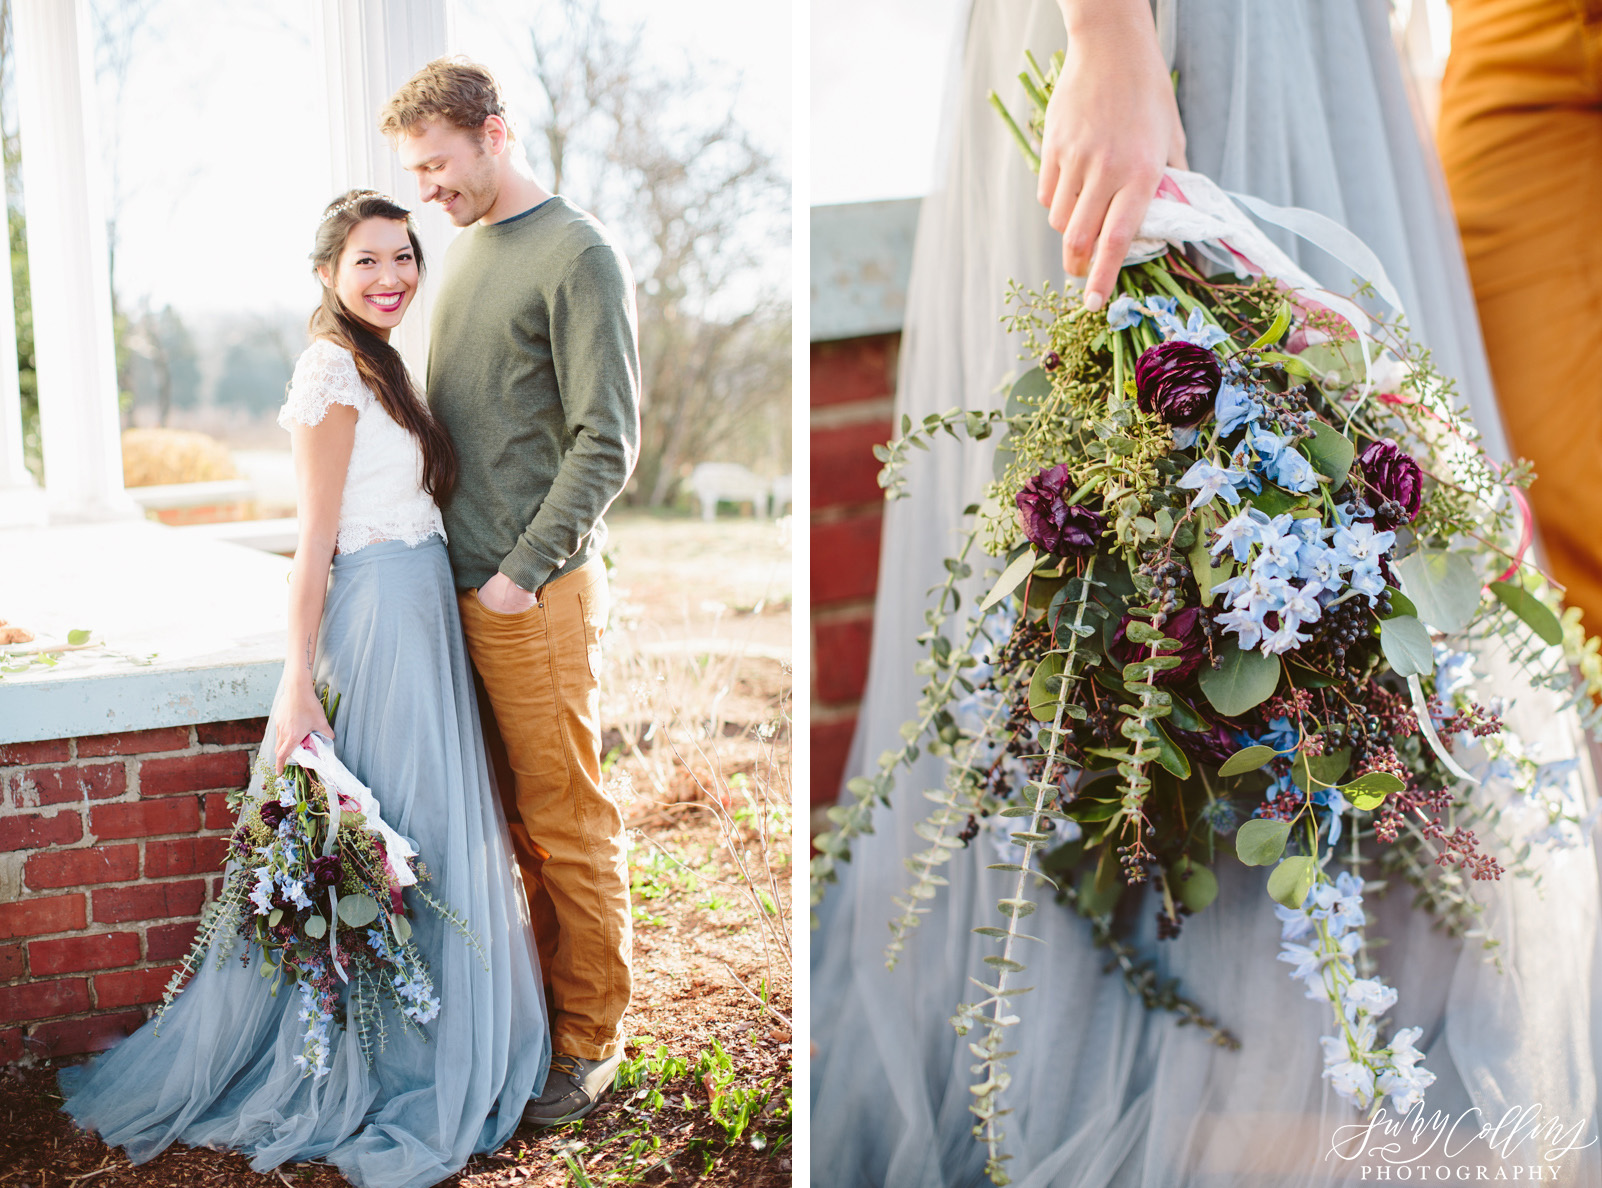 poses, outdoor, styled shoot, intimate, florals, vibrant, dark and moody, sunset, love, details, passion, Knoxville, tennessee, vibrant, colorful, editorial, publication, fun, unique, flowers